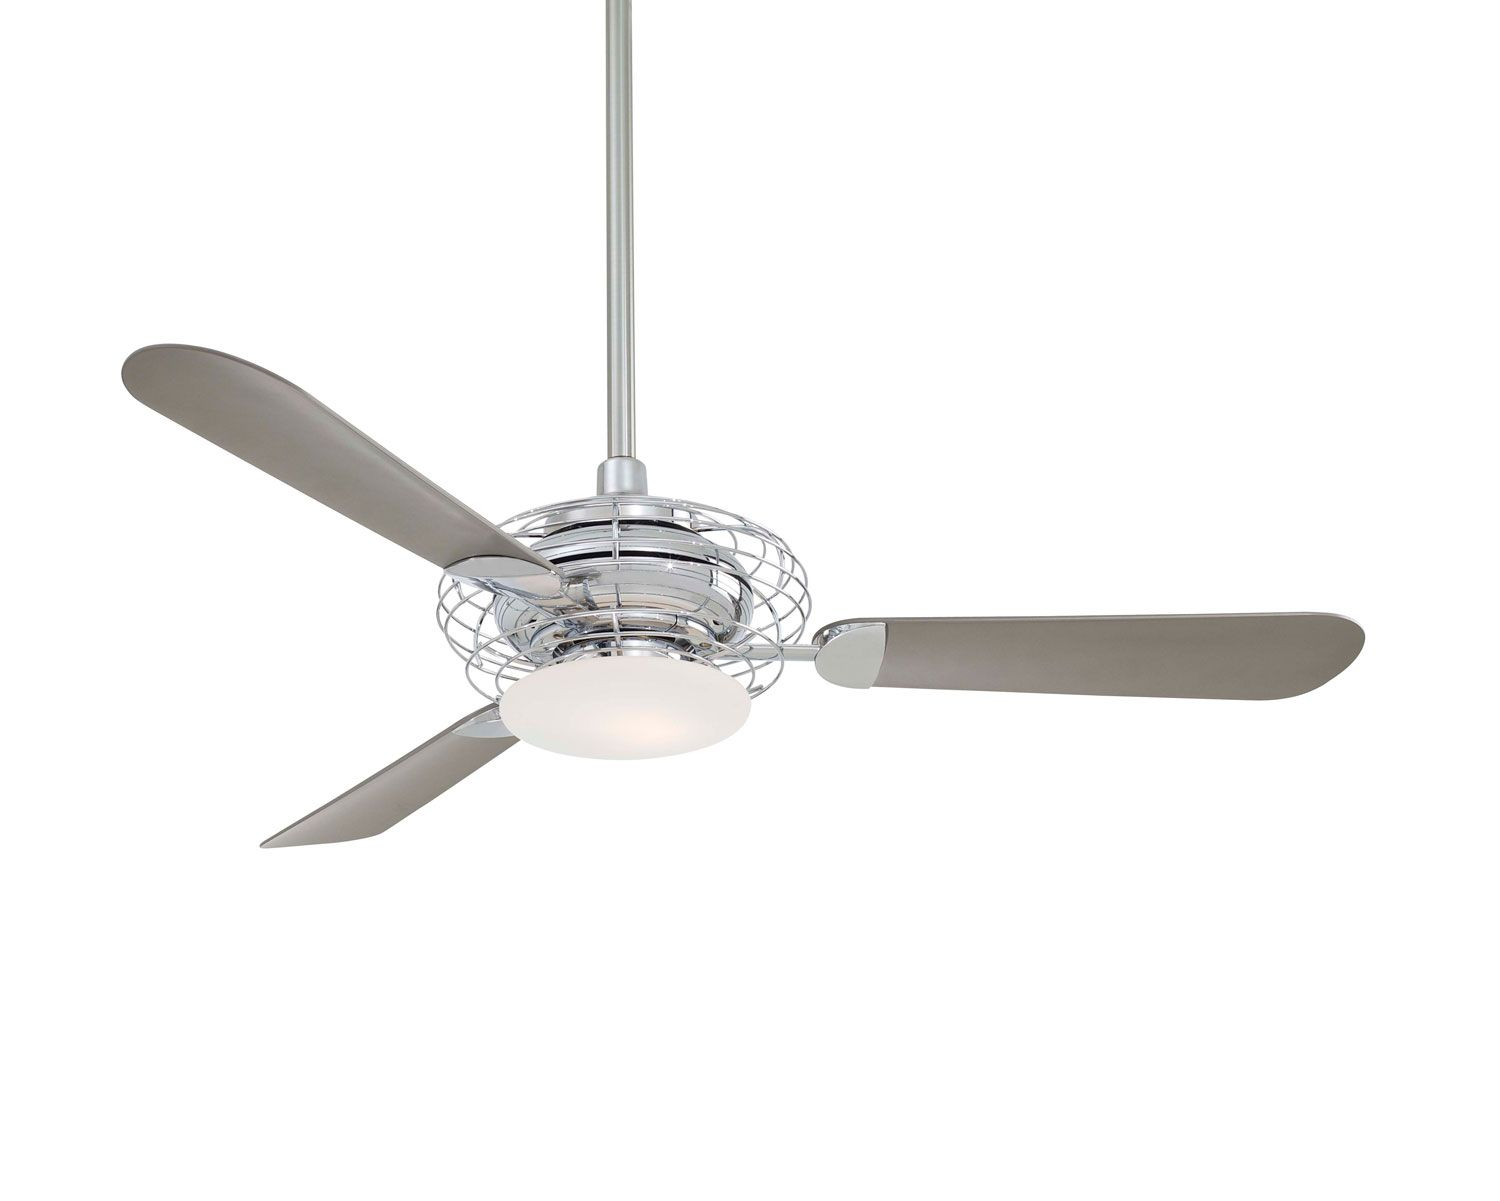 52 Ceiling Fan With Light And Wall Control Ceiling Fan Fan Light Ceiling Fan With Light